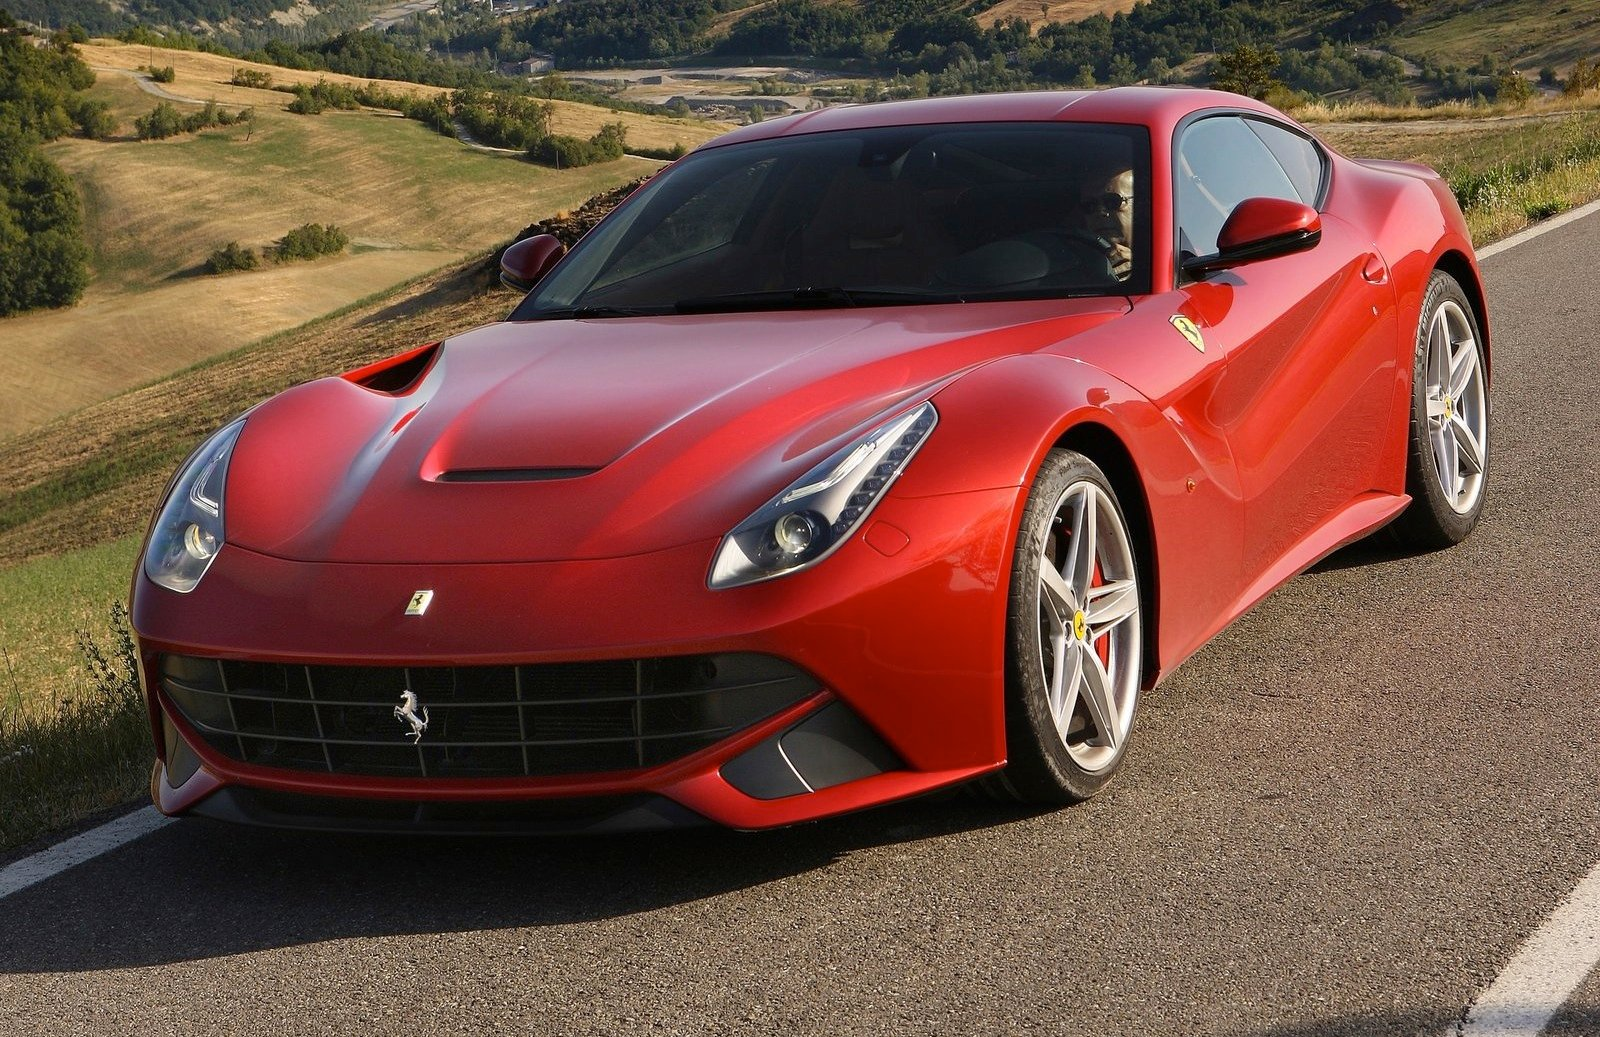 Ferrari, McLaren Supercars Added To Hertz European Rental Car Range - Photos